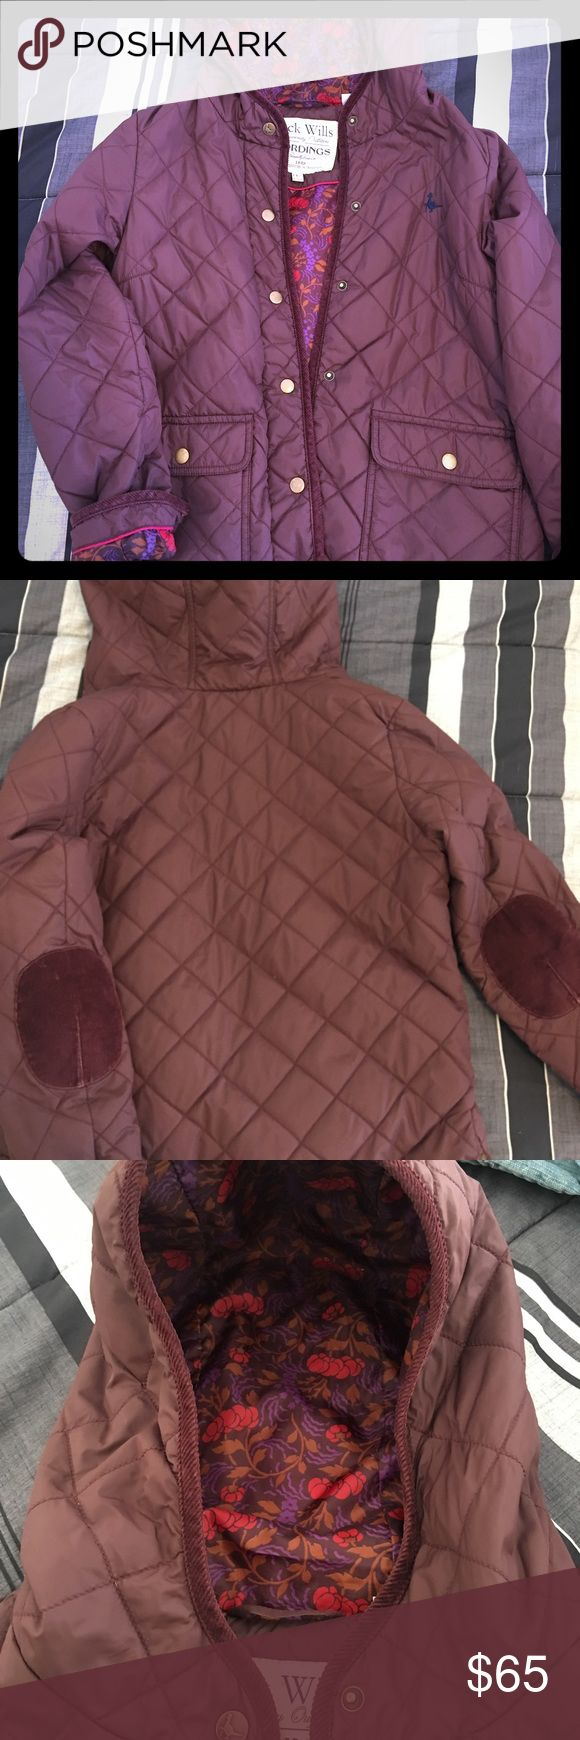 Jack wills maroon quilted coat More maroon in person and barely worn Jack Wills Jackets & Coats